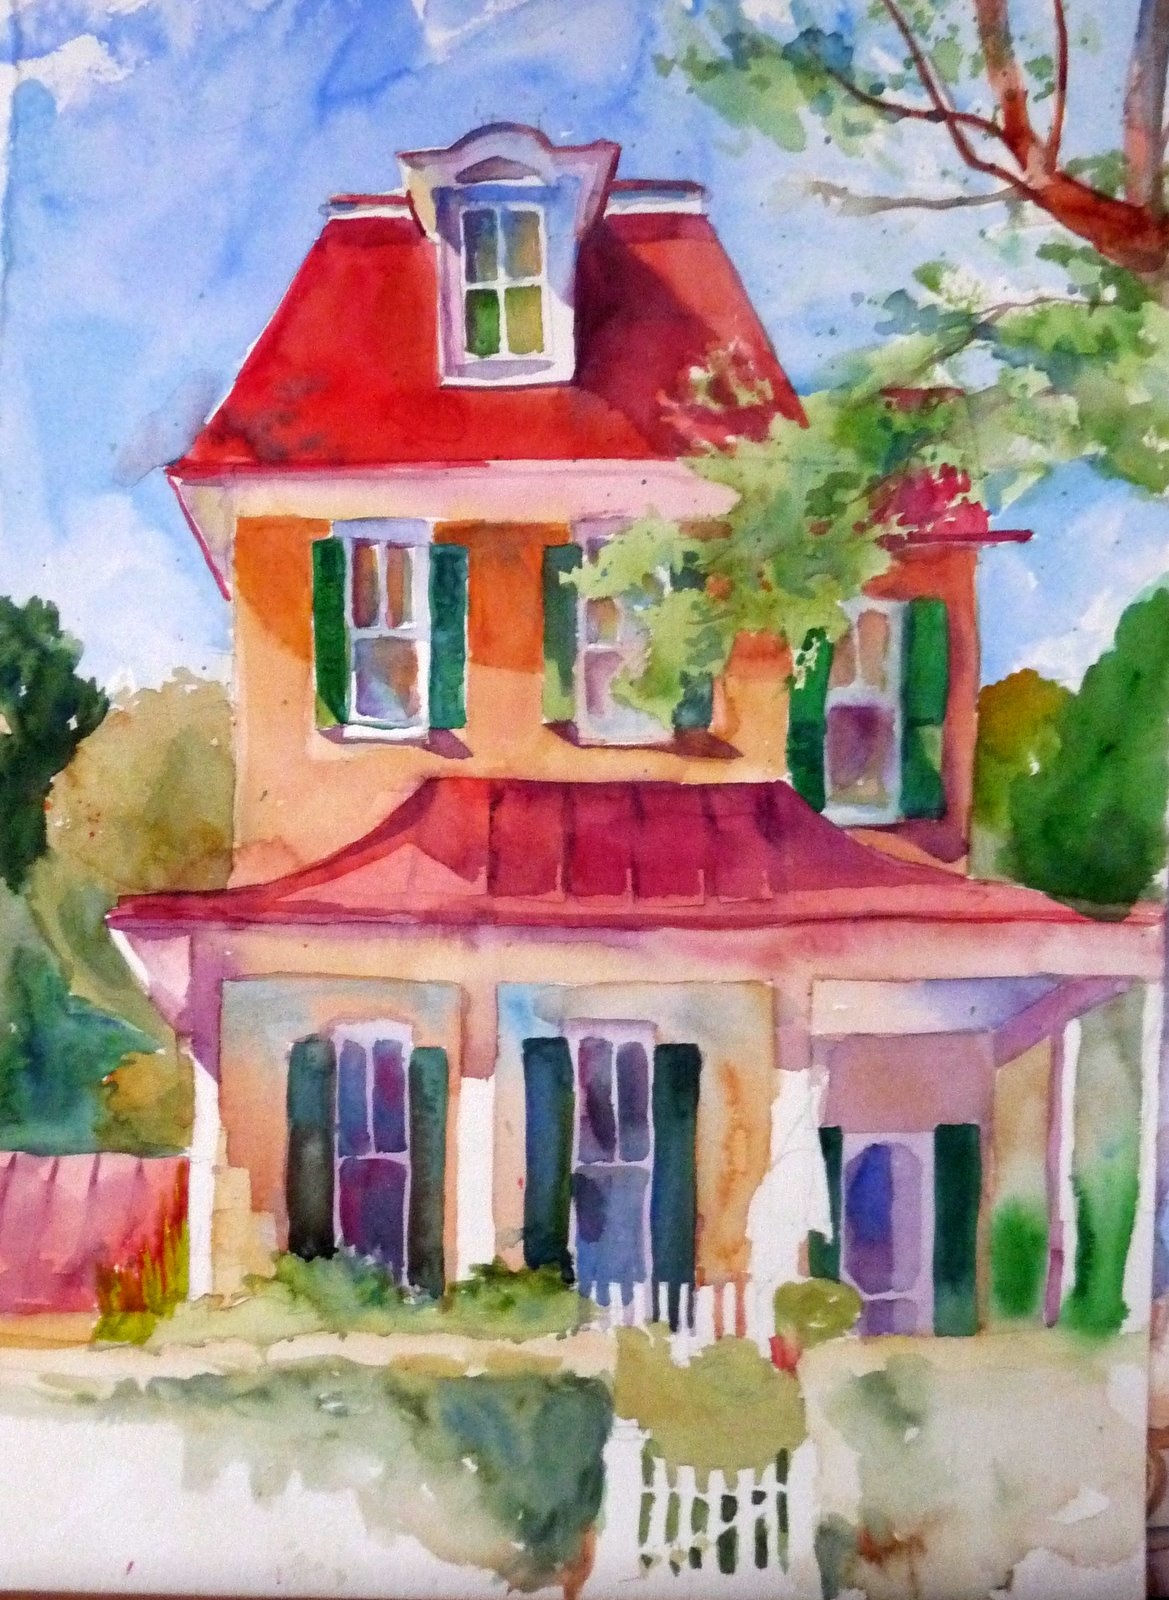 laura's watercolors: charles reid workshop